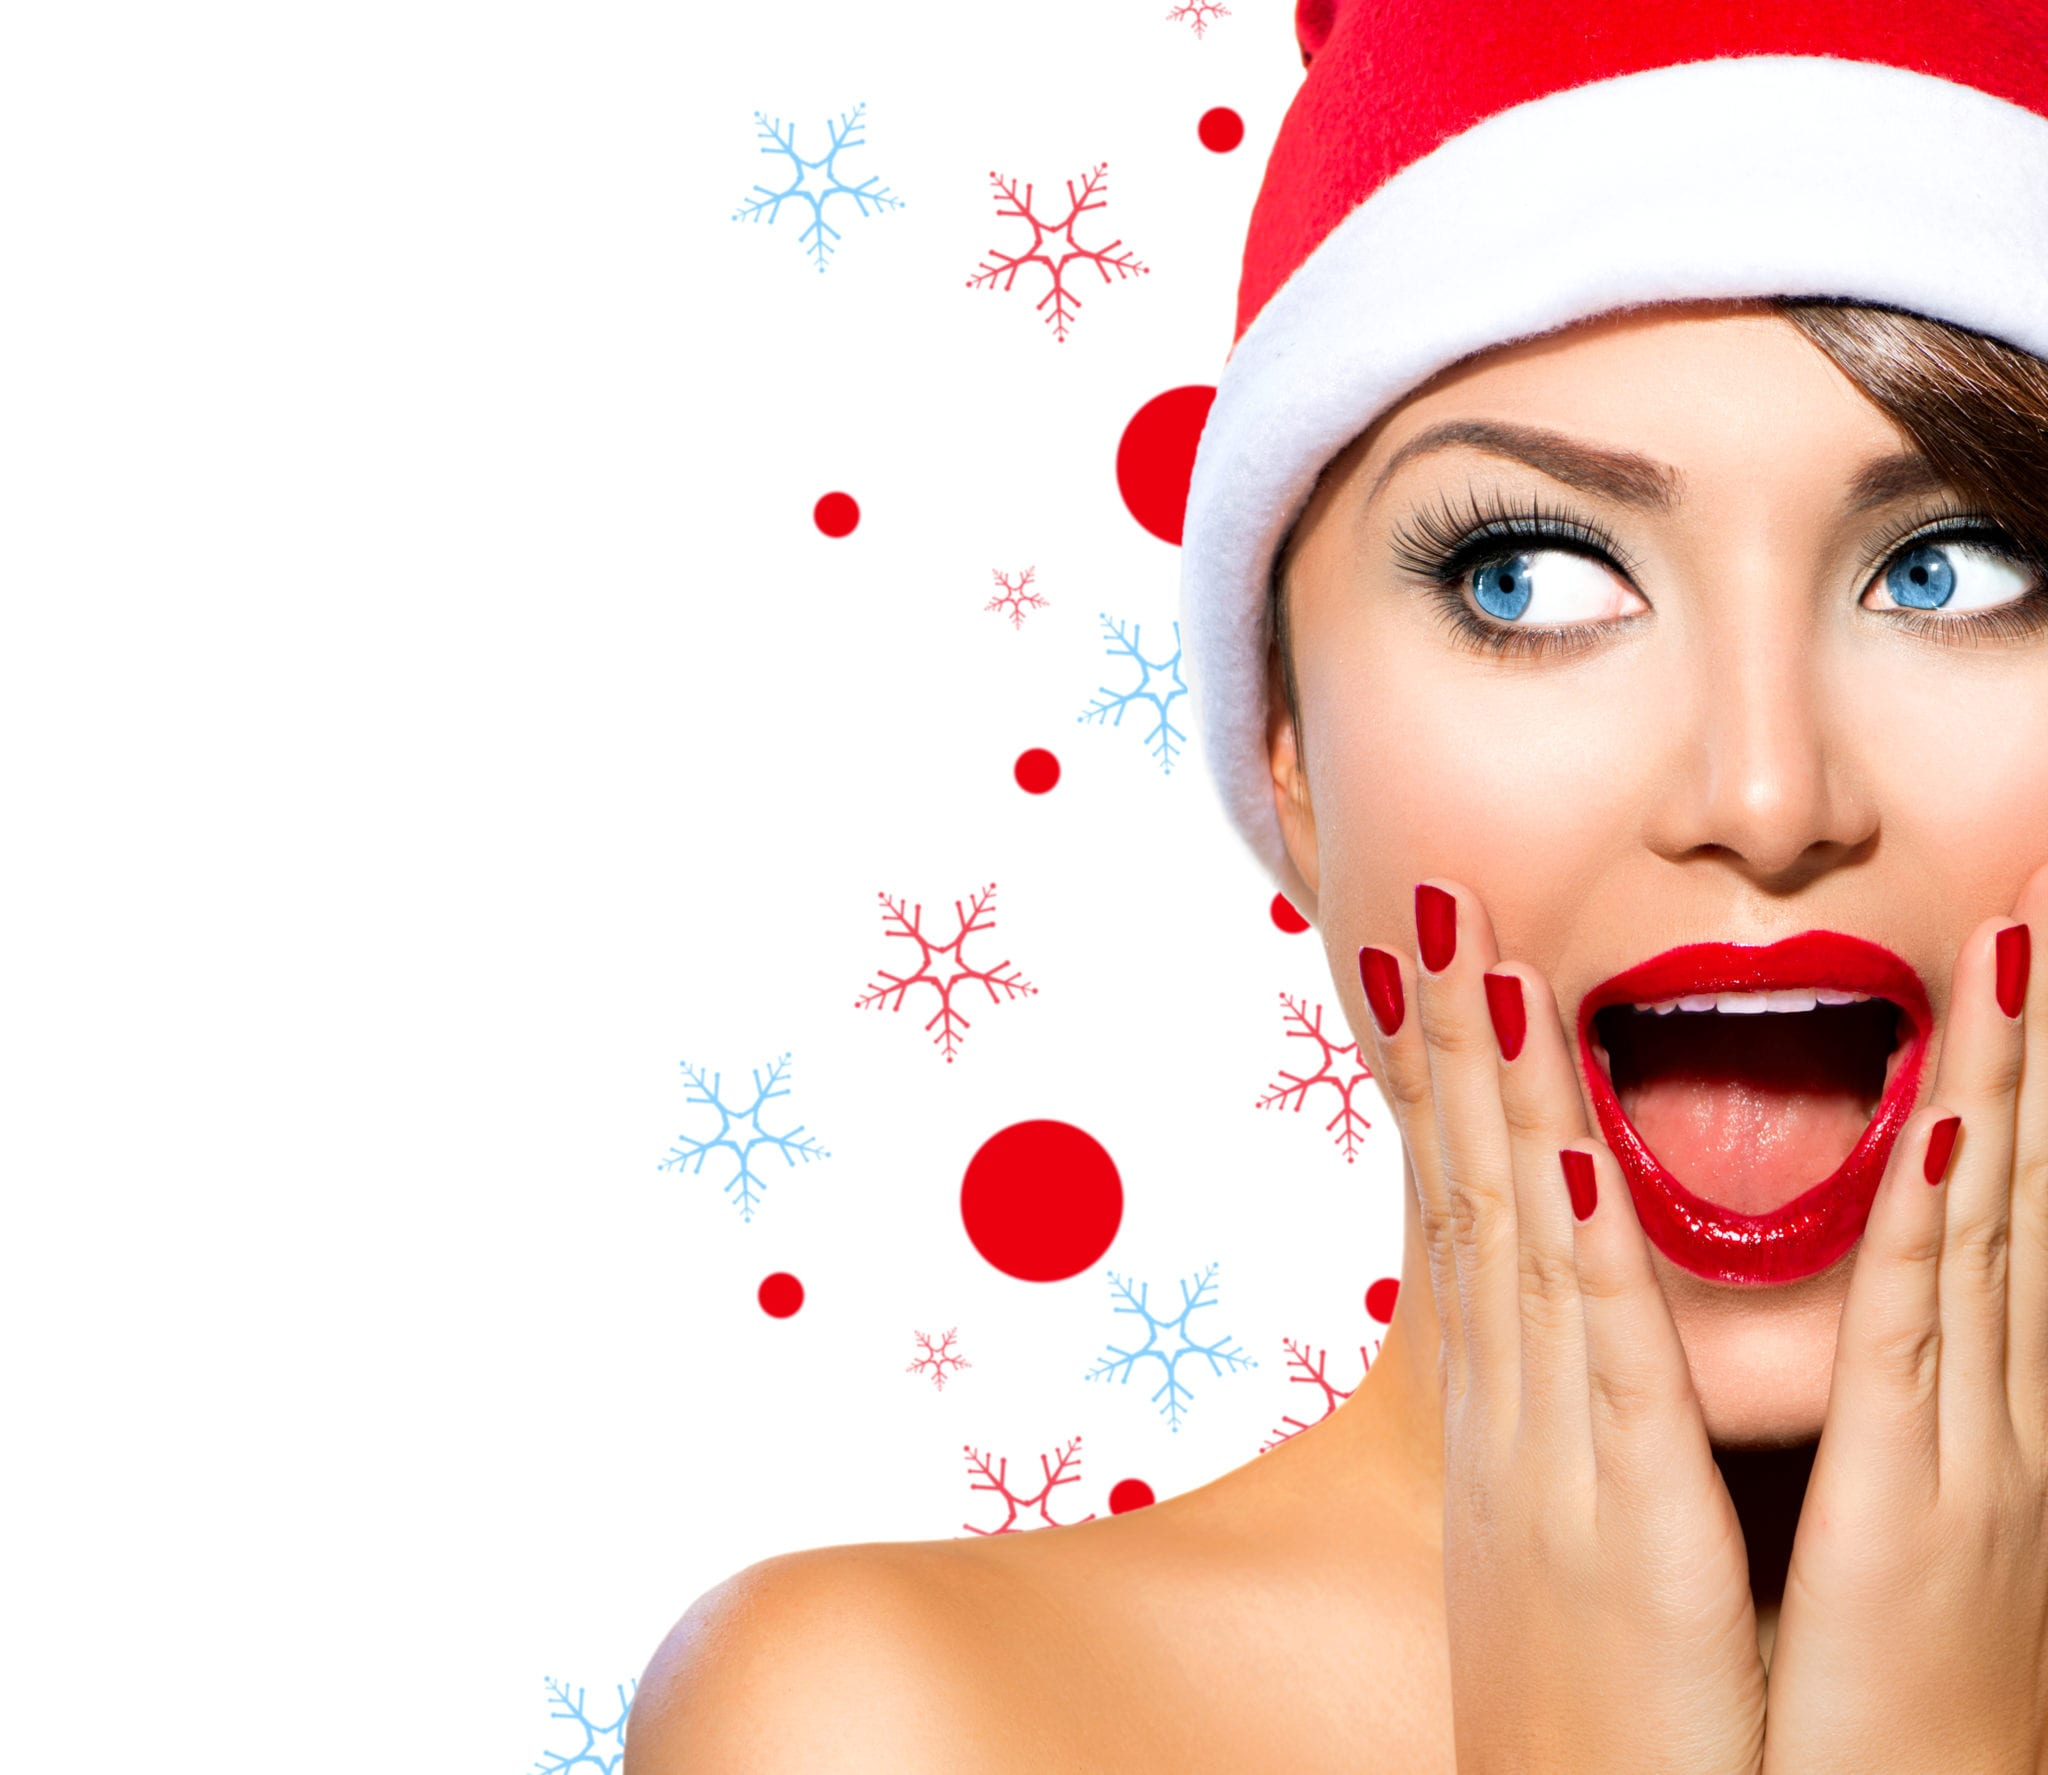 look hot for the holidays - holiday cosmetic treatments